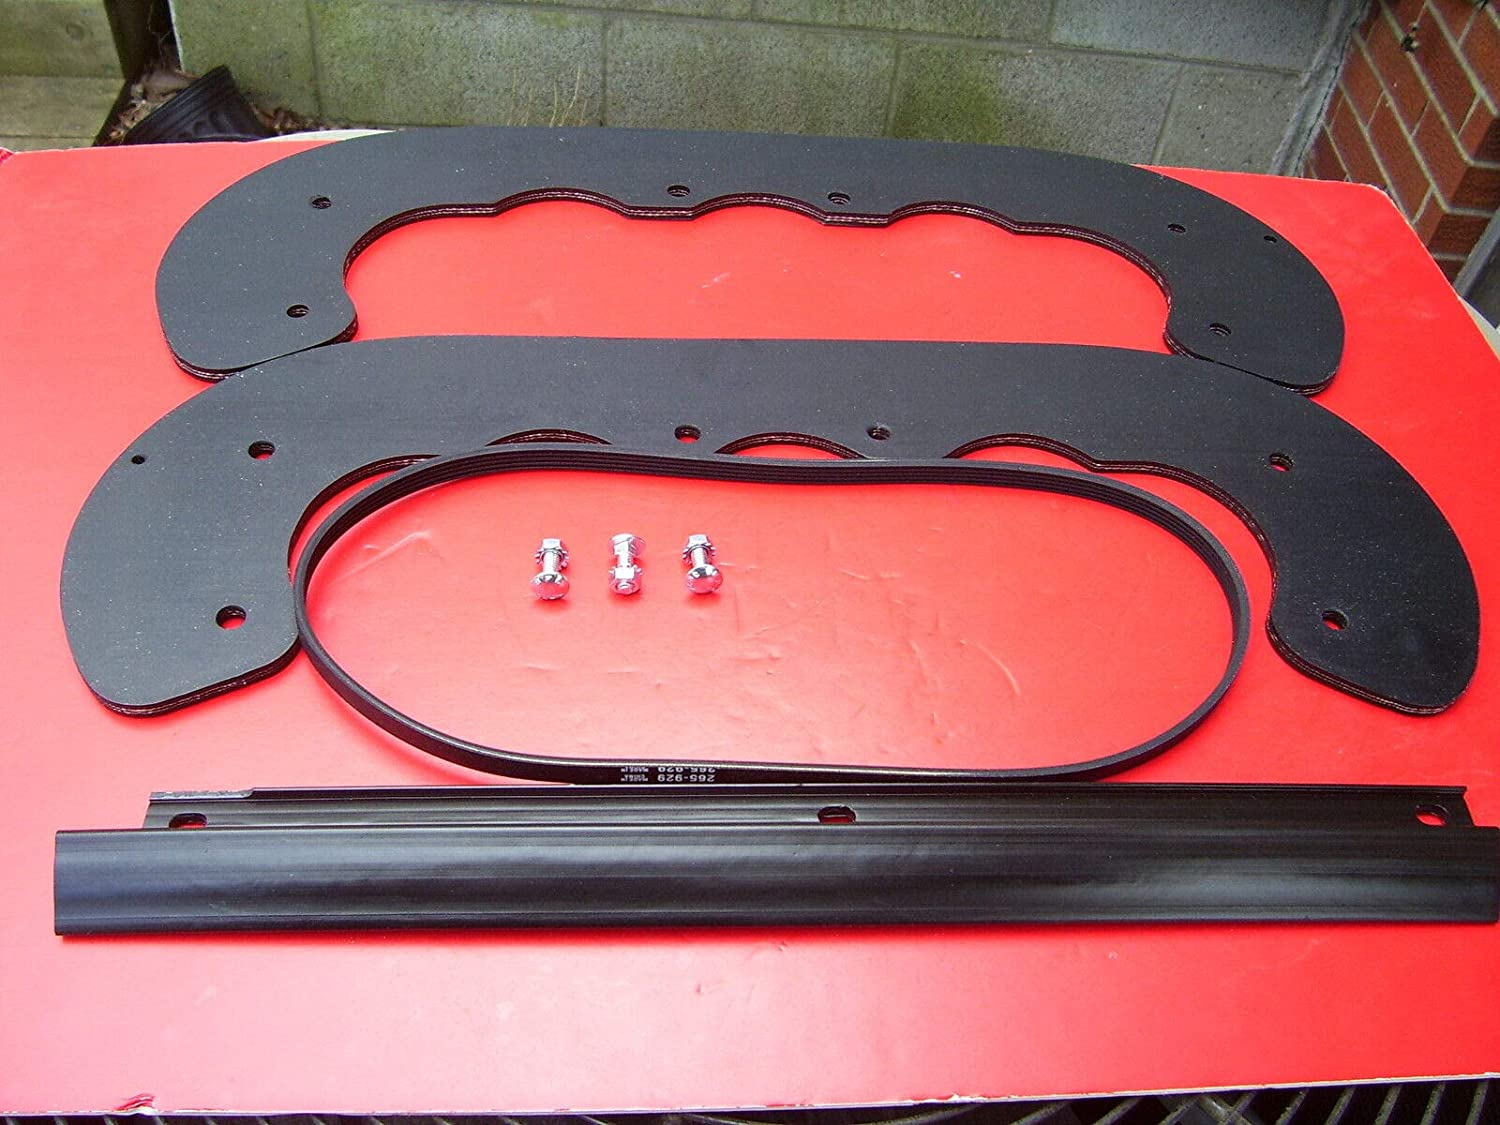 RDOG Paddles Scraper Belt HDW 95-6151 99-9313 fo Outstanding Parts 55-8760 Max 79% OFF